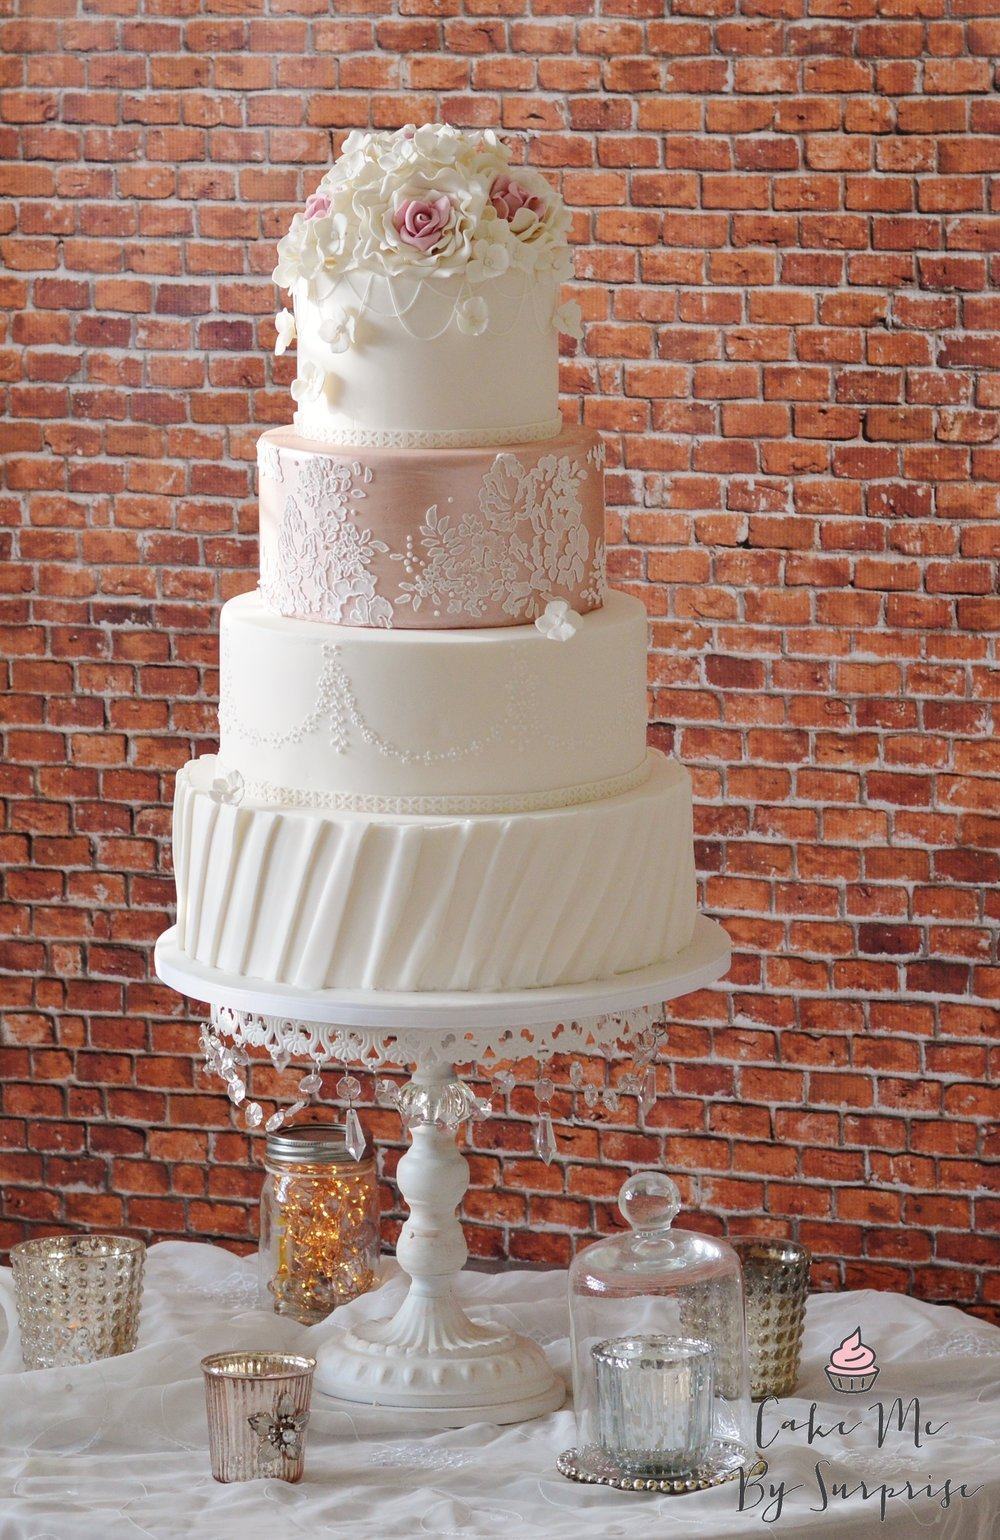 Blush Pink and White Bridal Wedding Cake